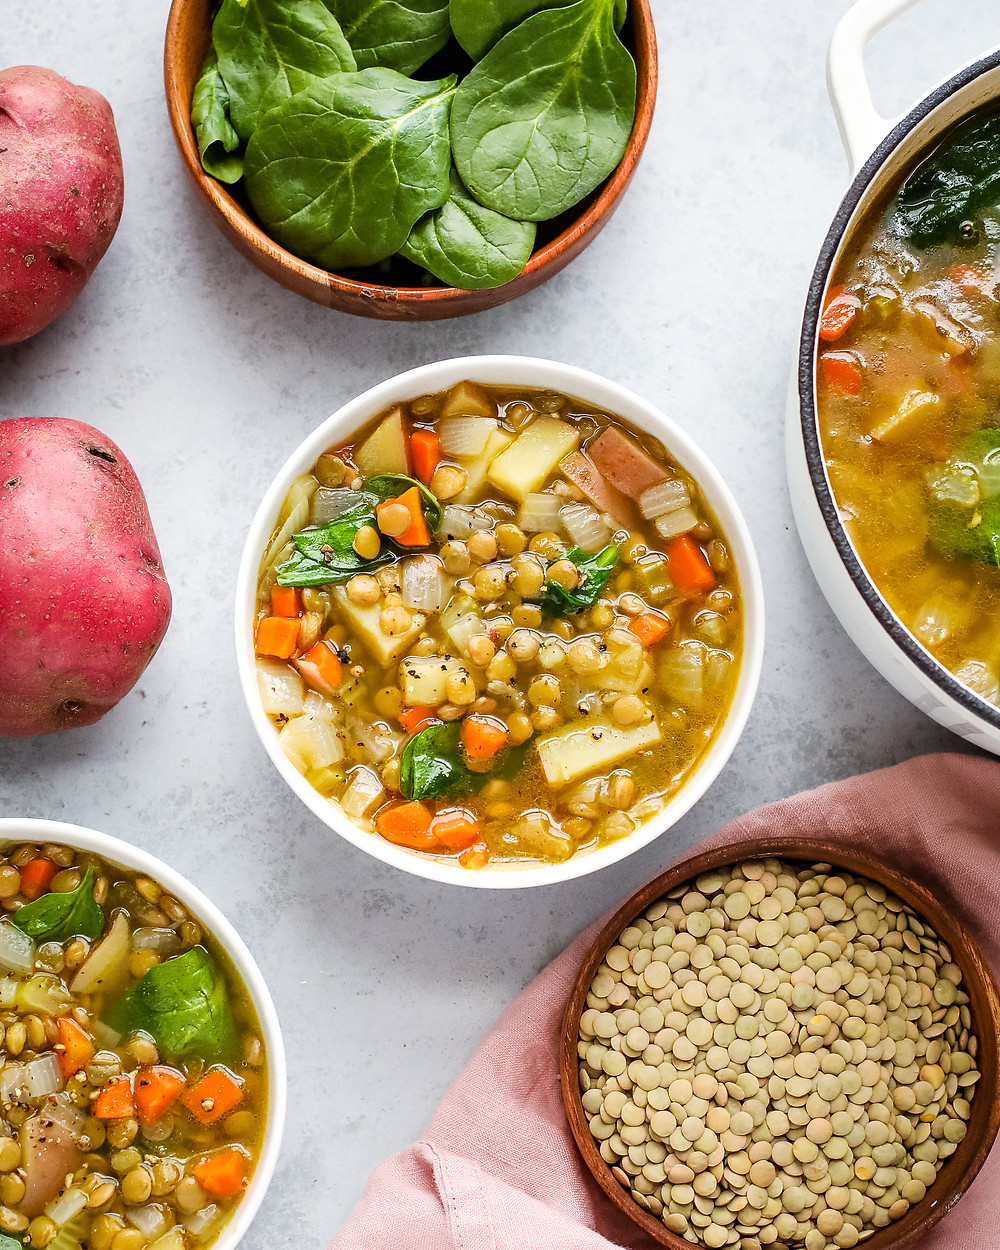 lentil soup in bowl surrounded by lentils and potatoes.